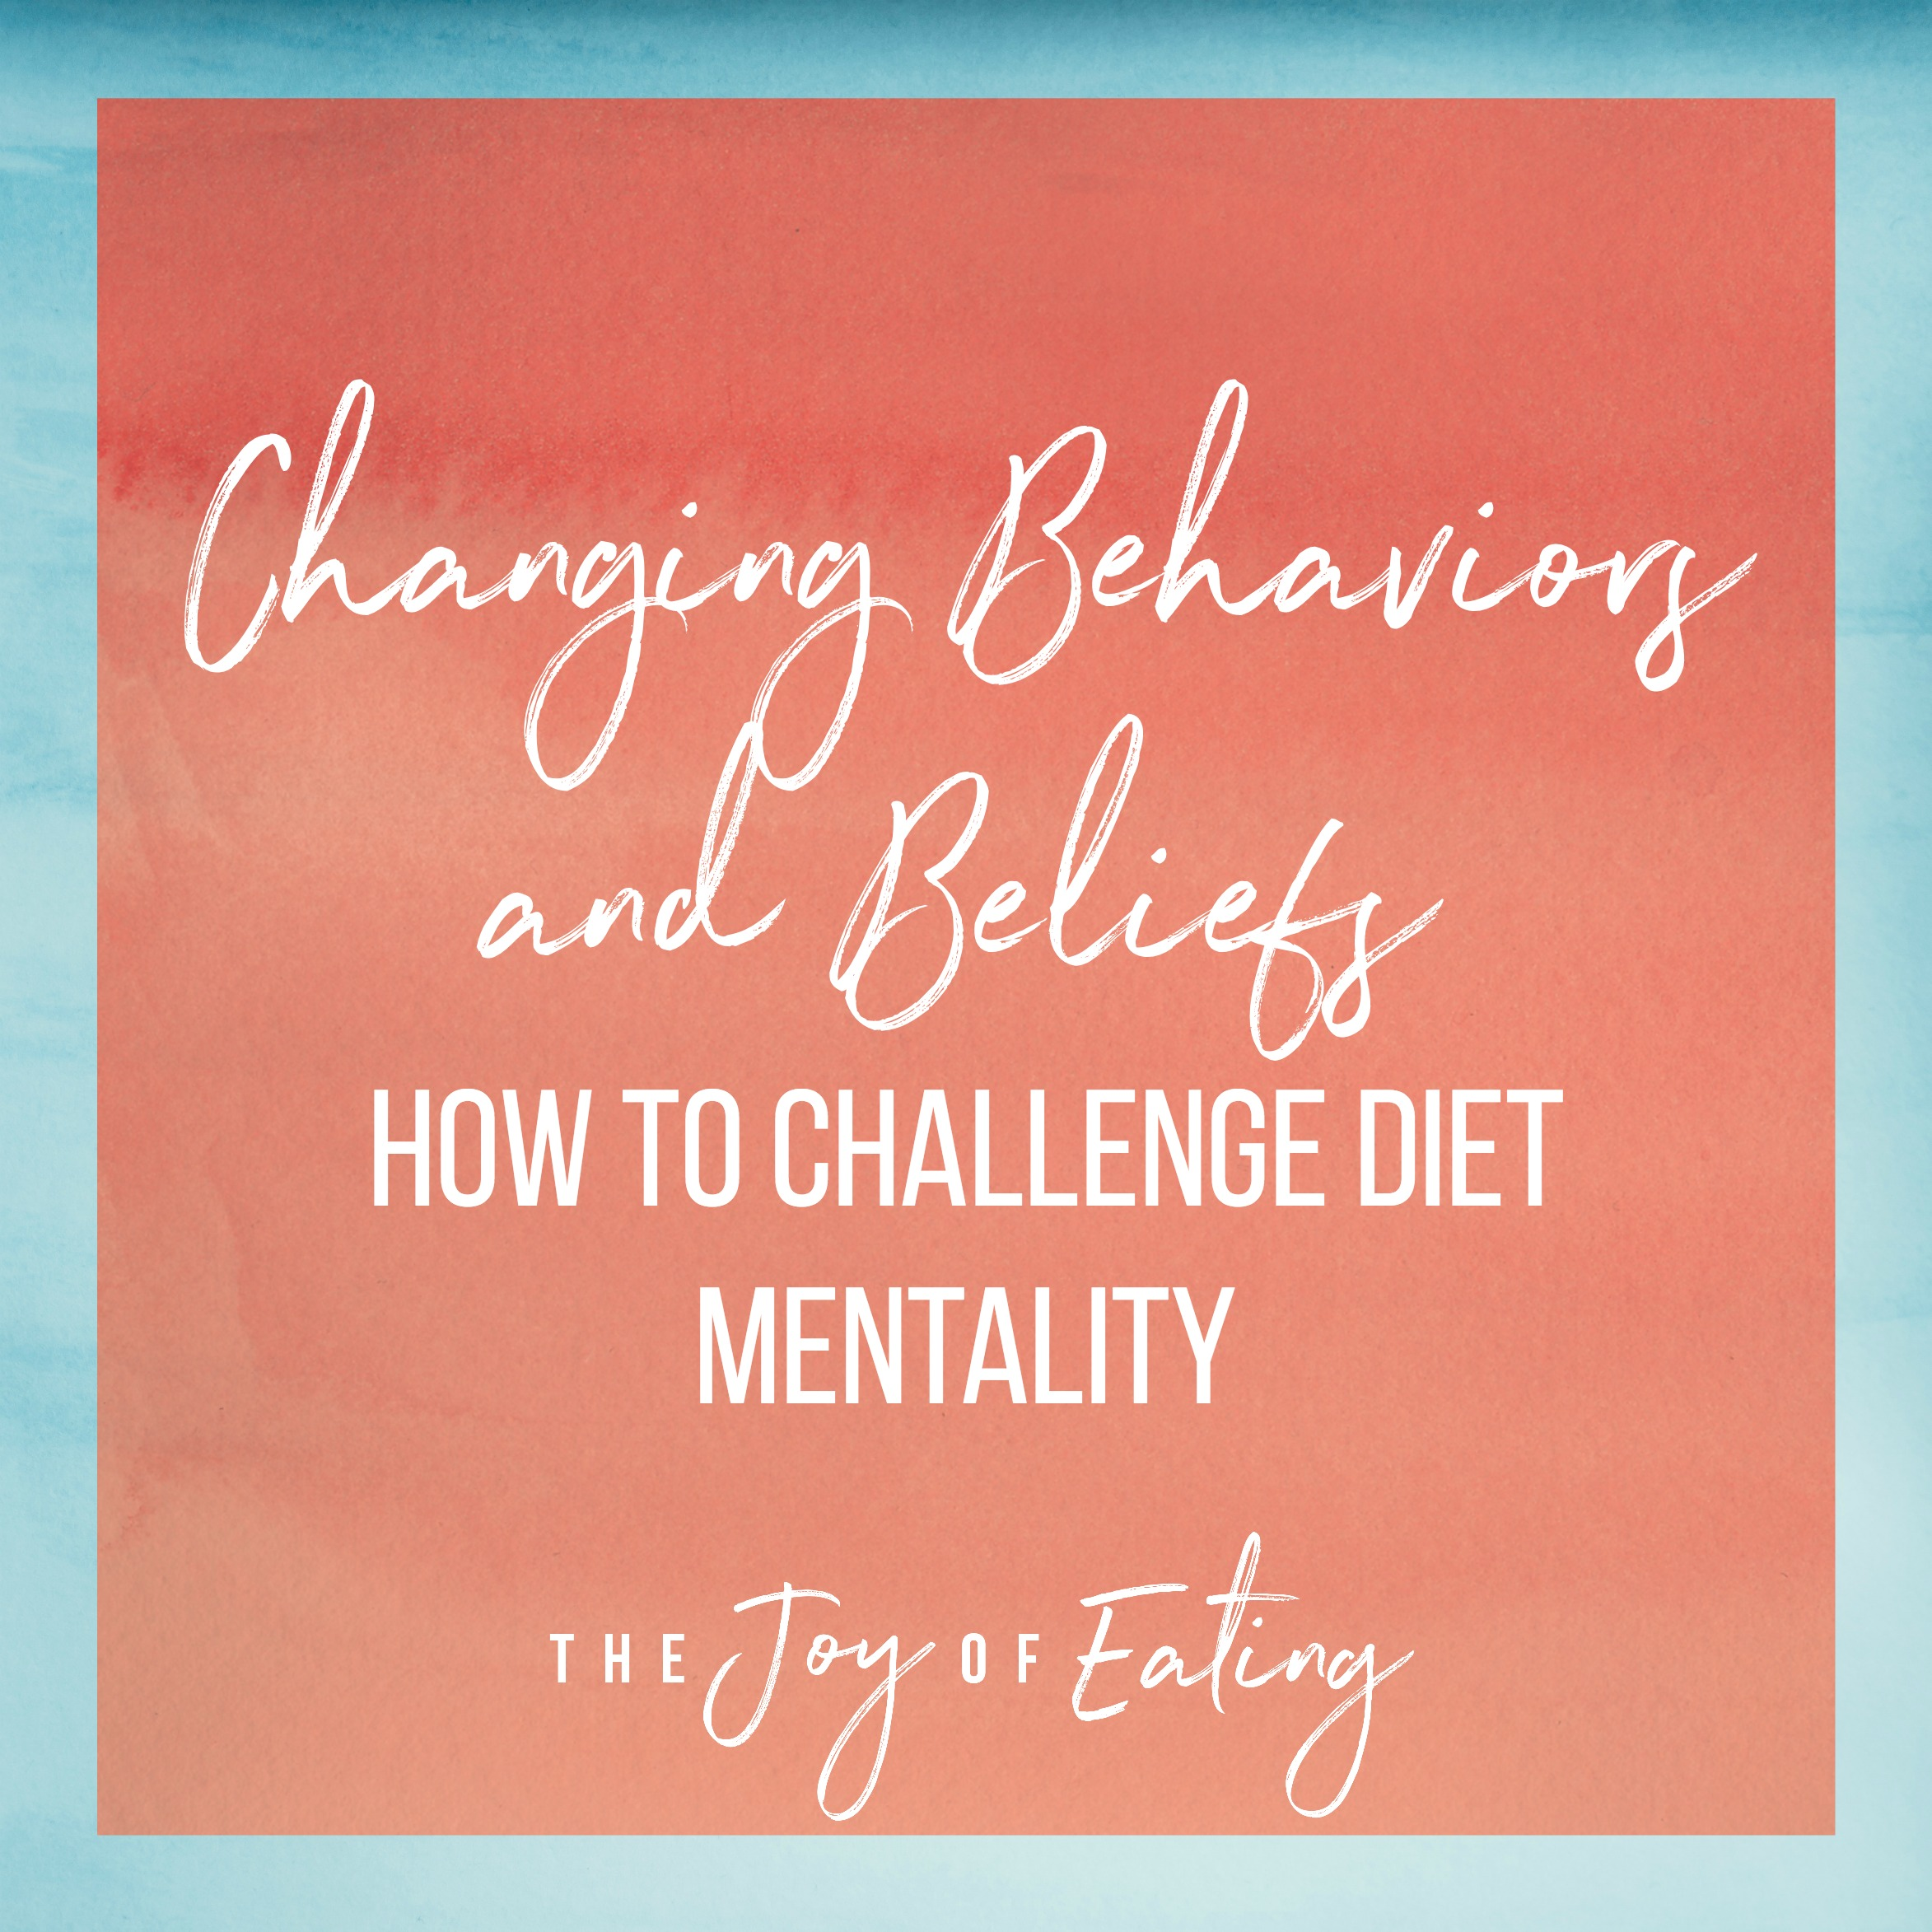 Bingeing, emotional eating and restriction are driven by beliefs rooted in diet mentality. The key to long lasting change is learning how to challenge these beliefs. Learn how in this post. #haes #intuitiveeating #nondiet #wellness